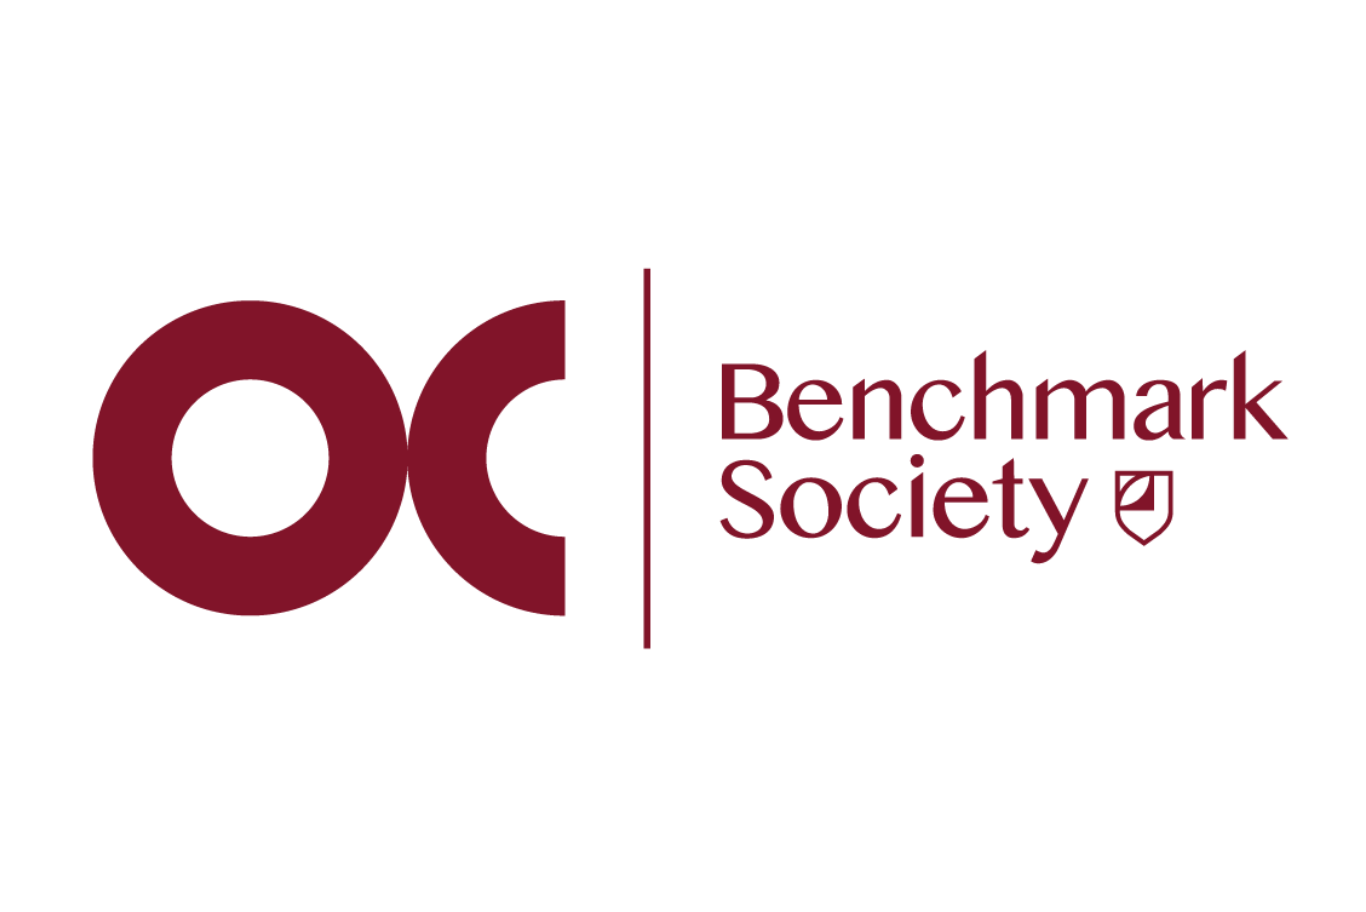 Benchmark Society